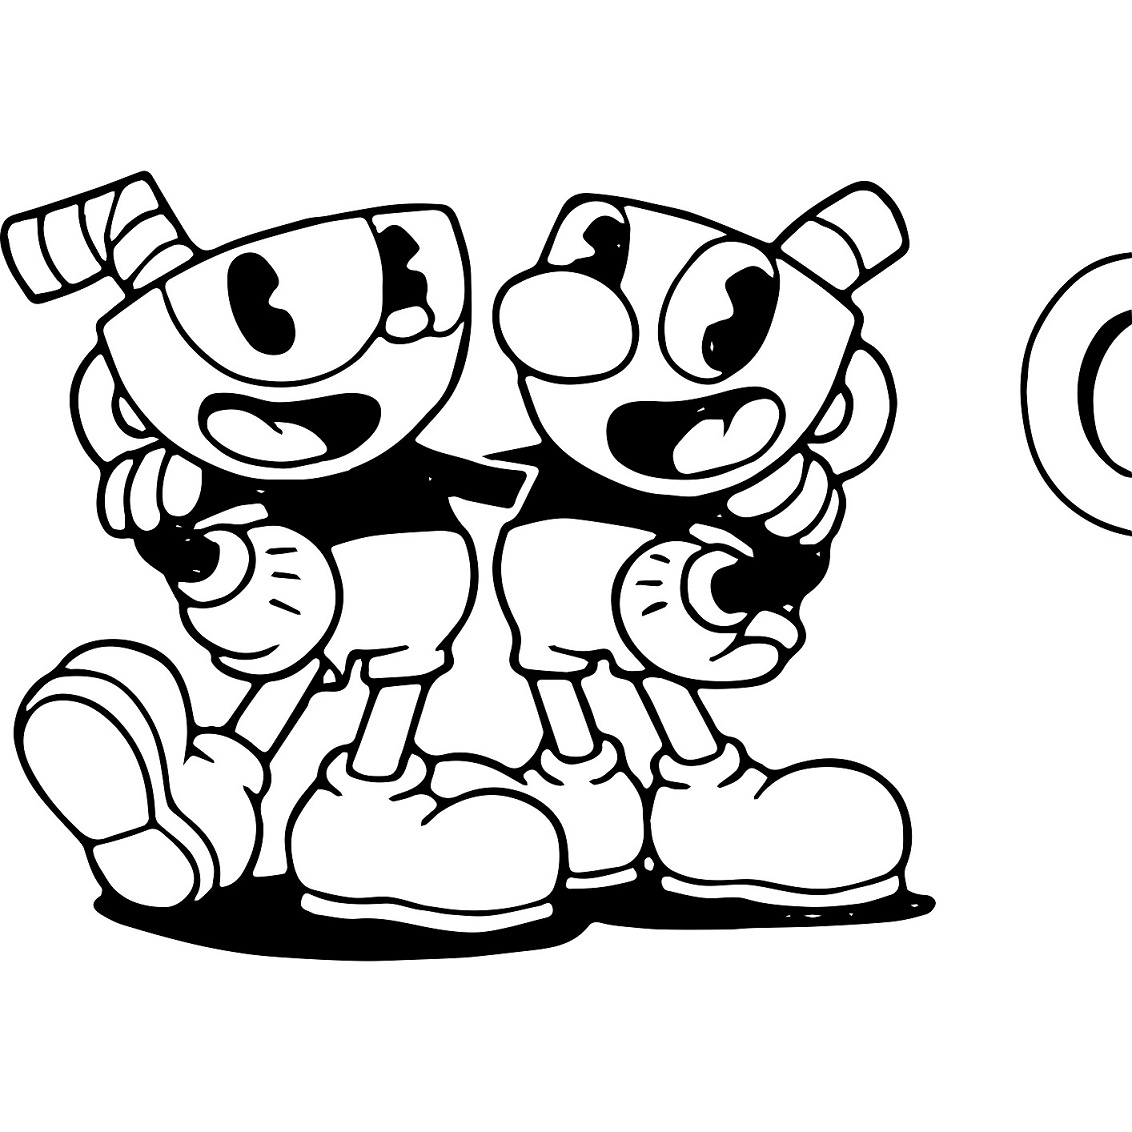 cuphead coloring pages | Cuphead Coloring Lesson | Kids Coloring Page – Coloring ...